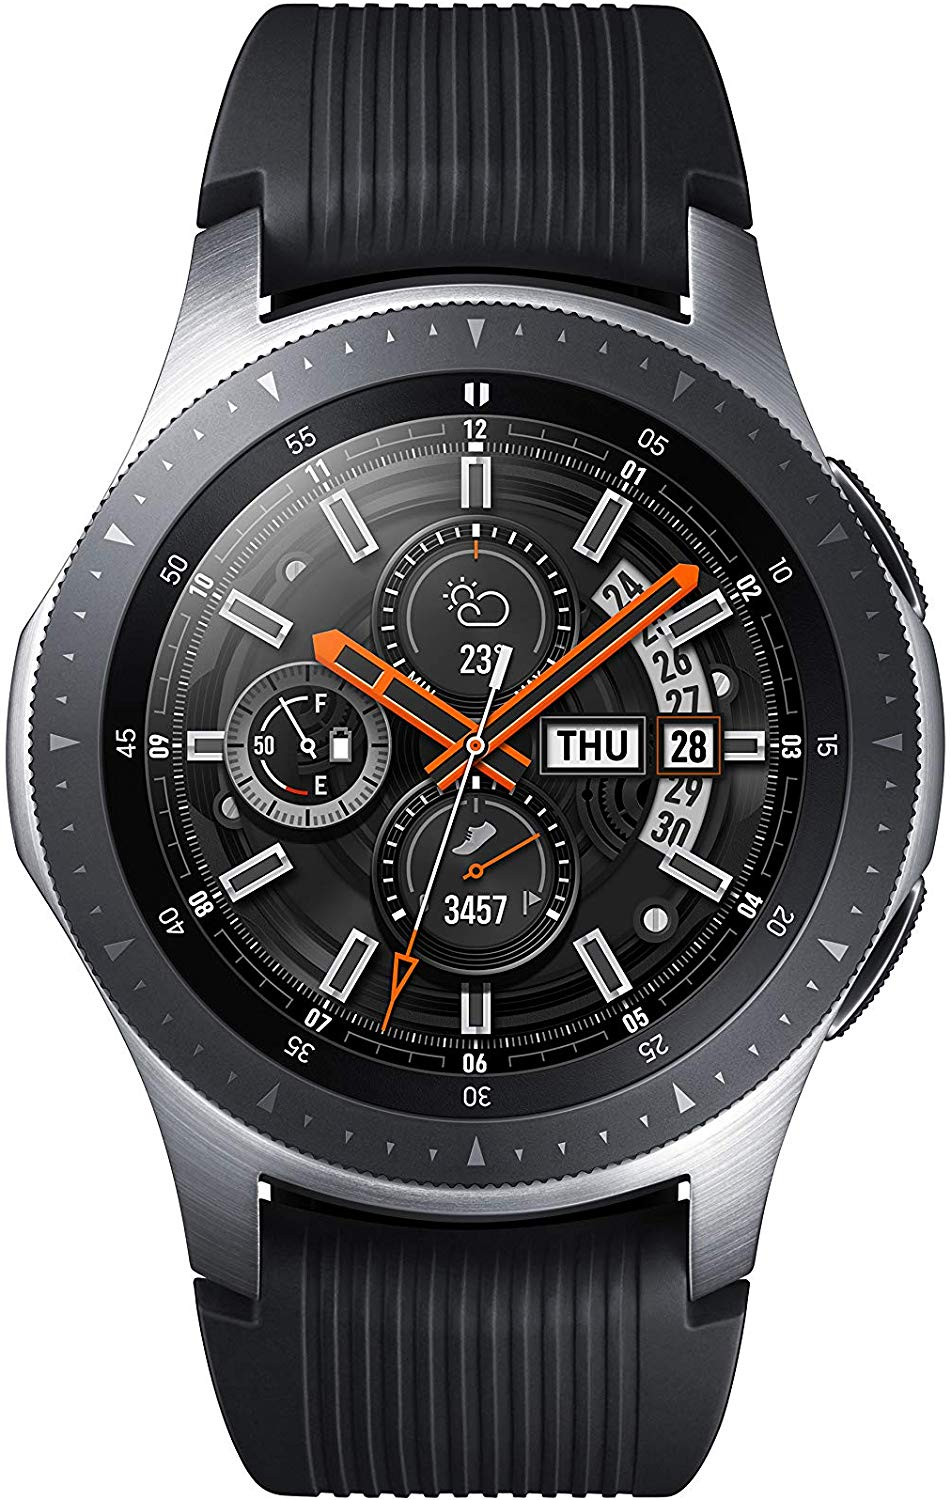 Samsung Galaxy Watch Smartwatch amazon